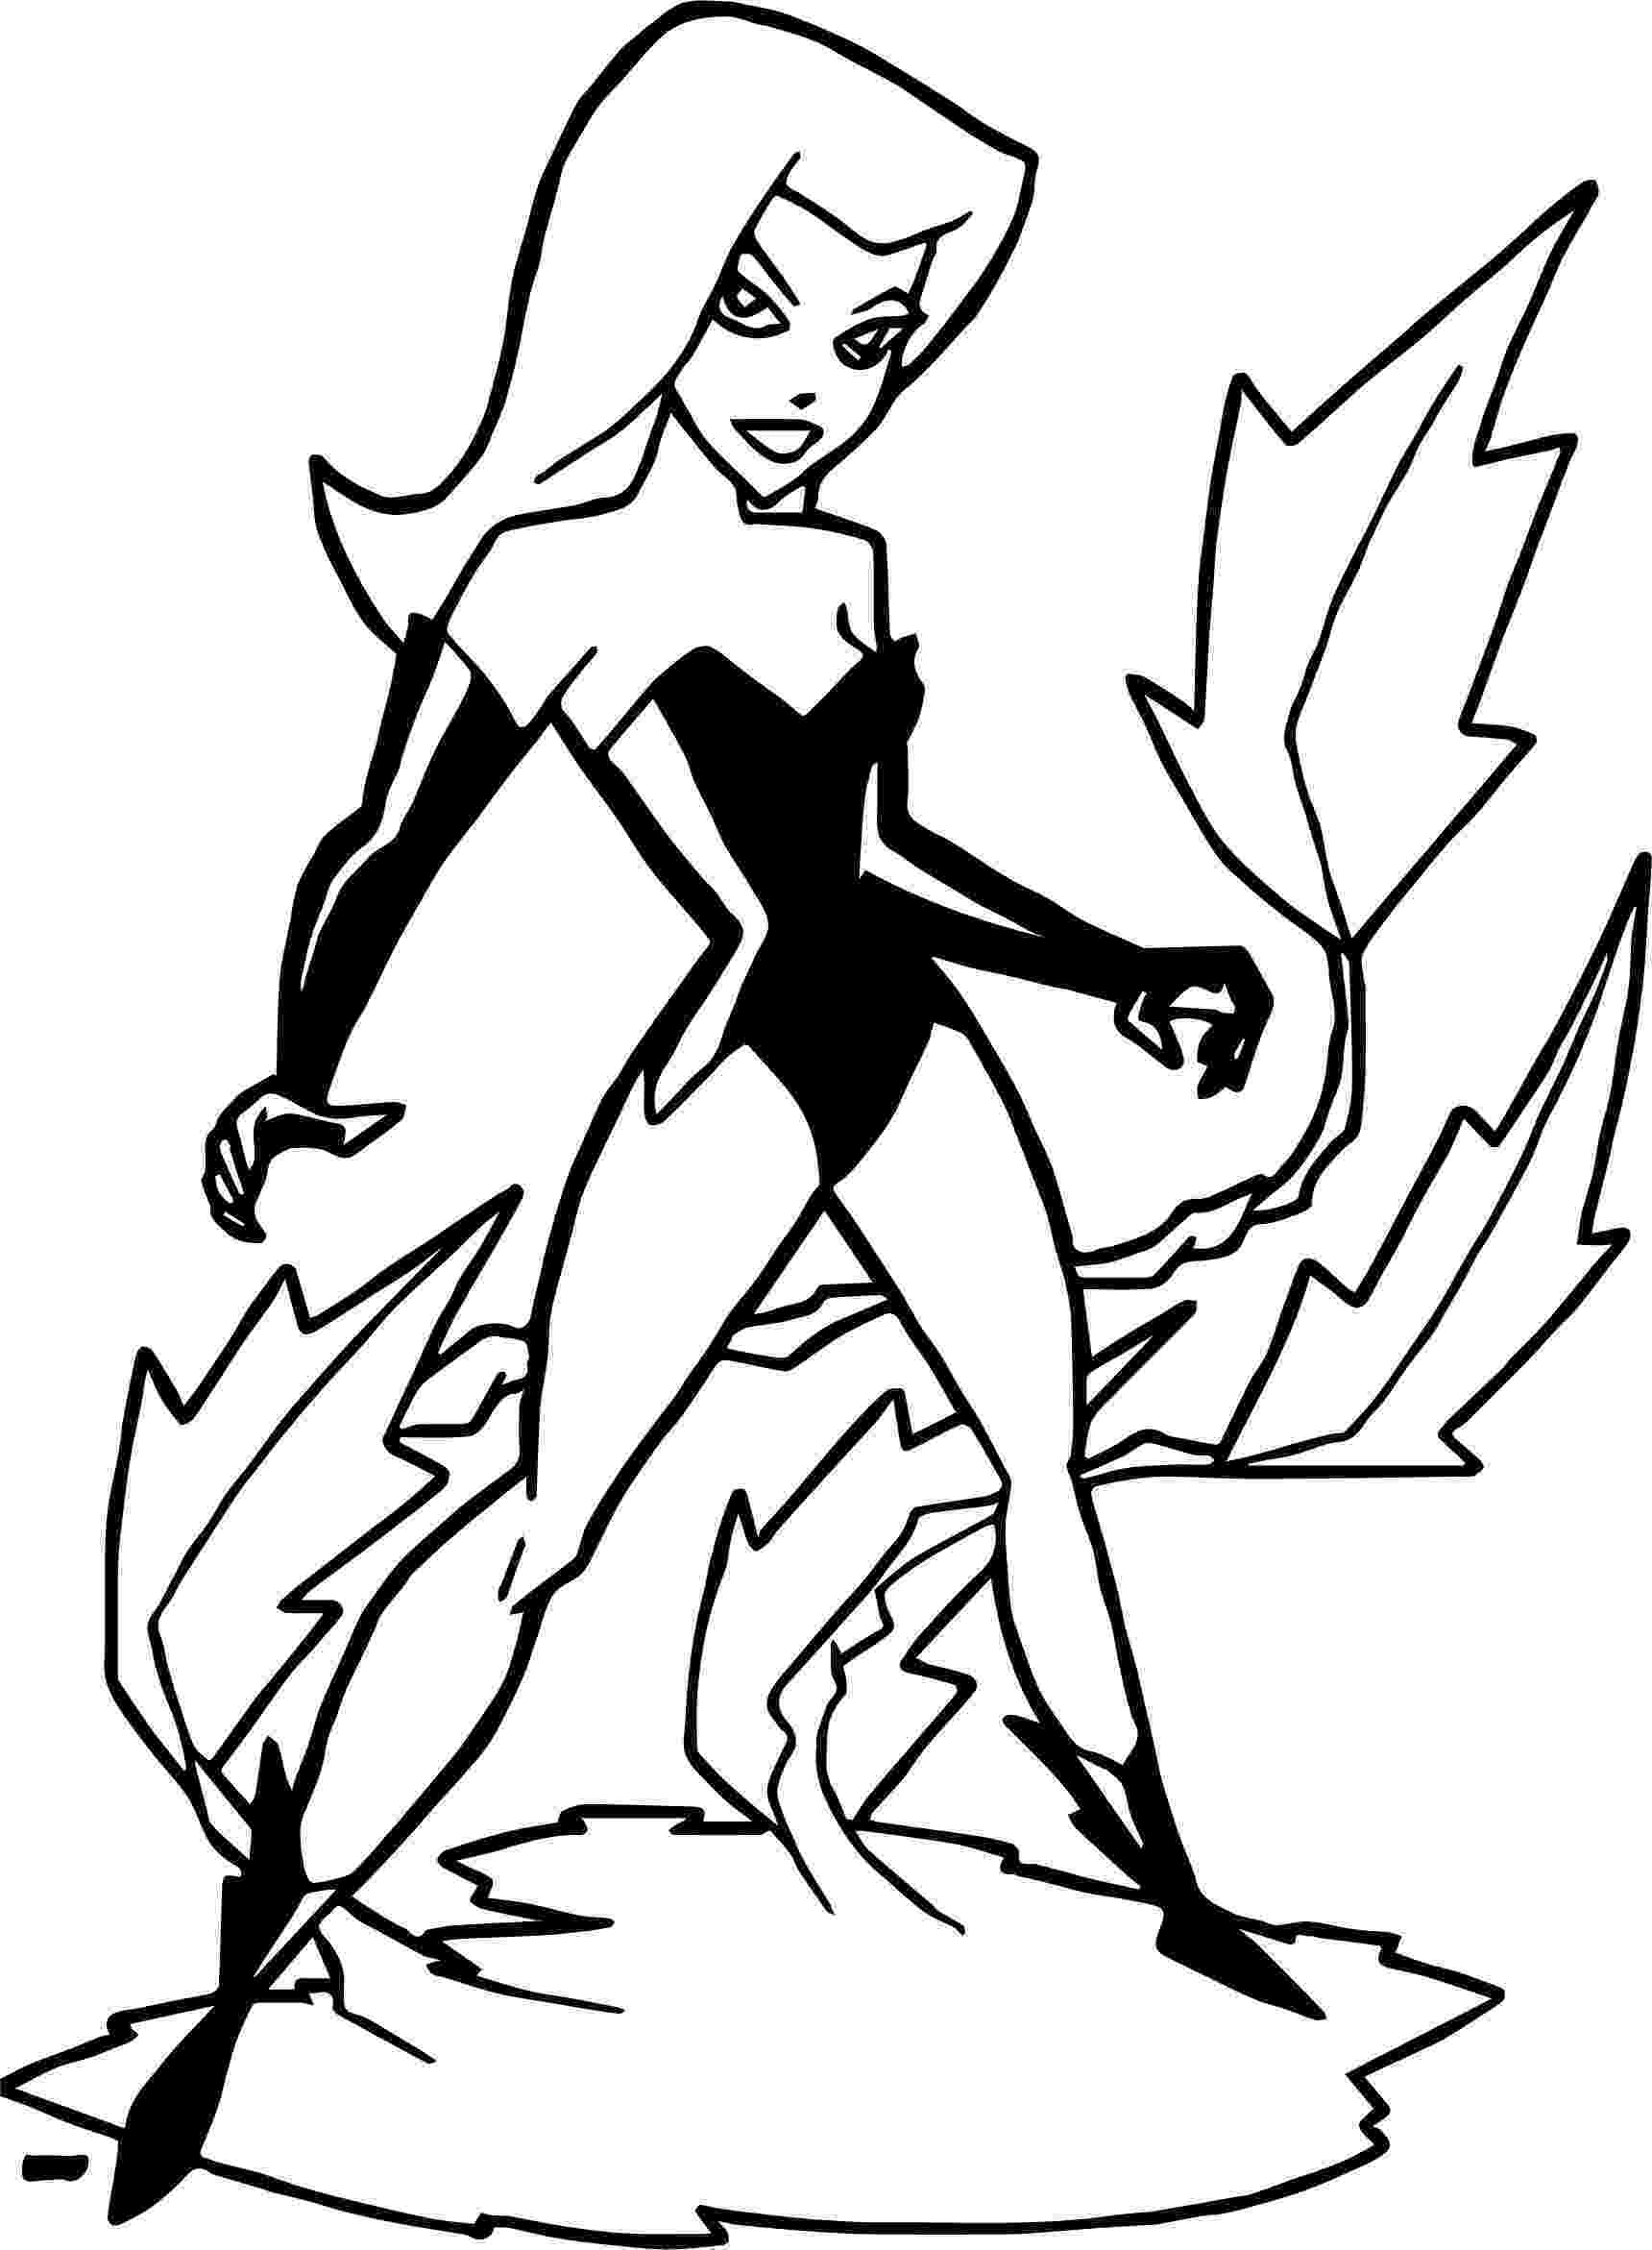 poison ivy coloring page poison ivy coloring pages adult deviantart more like ivy poison page coloring